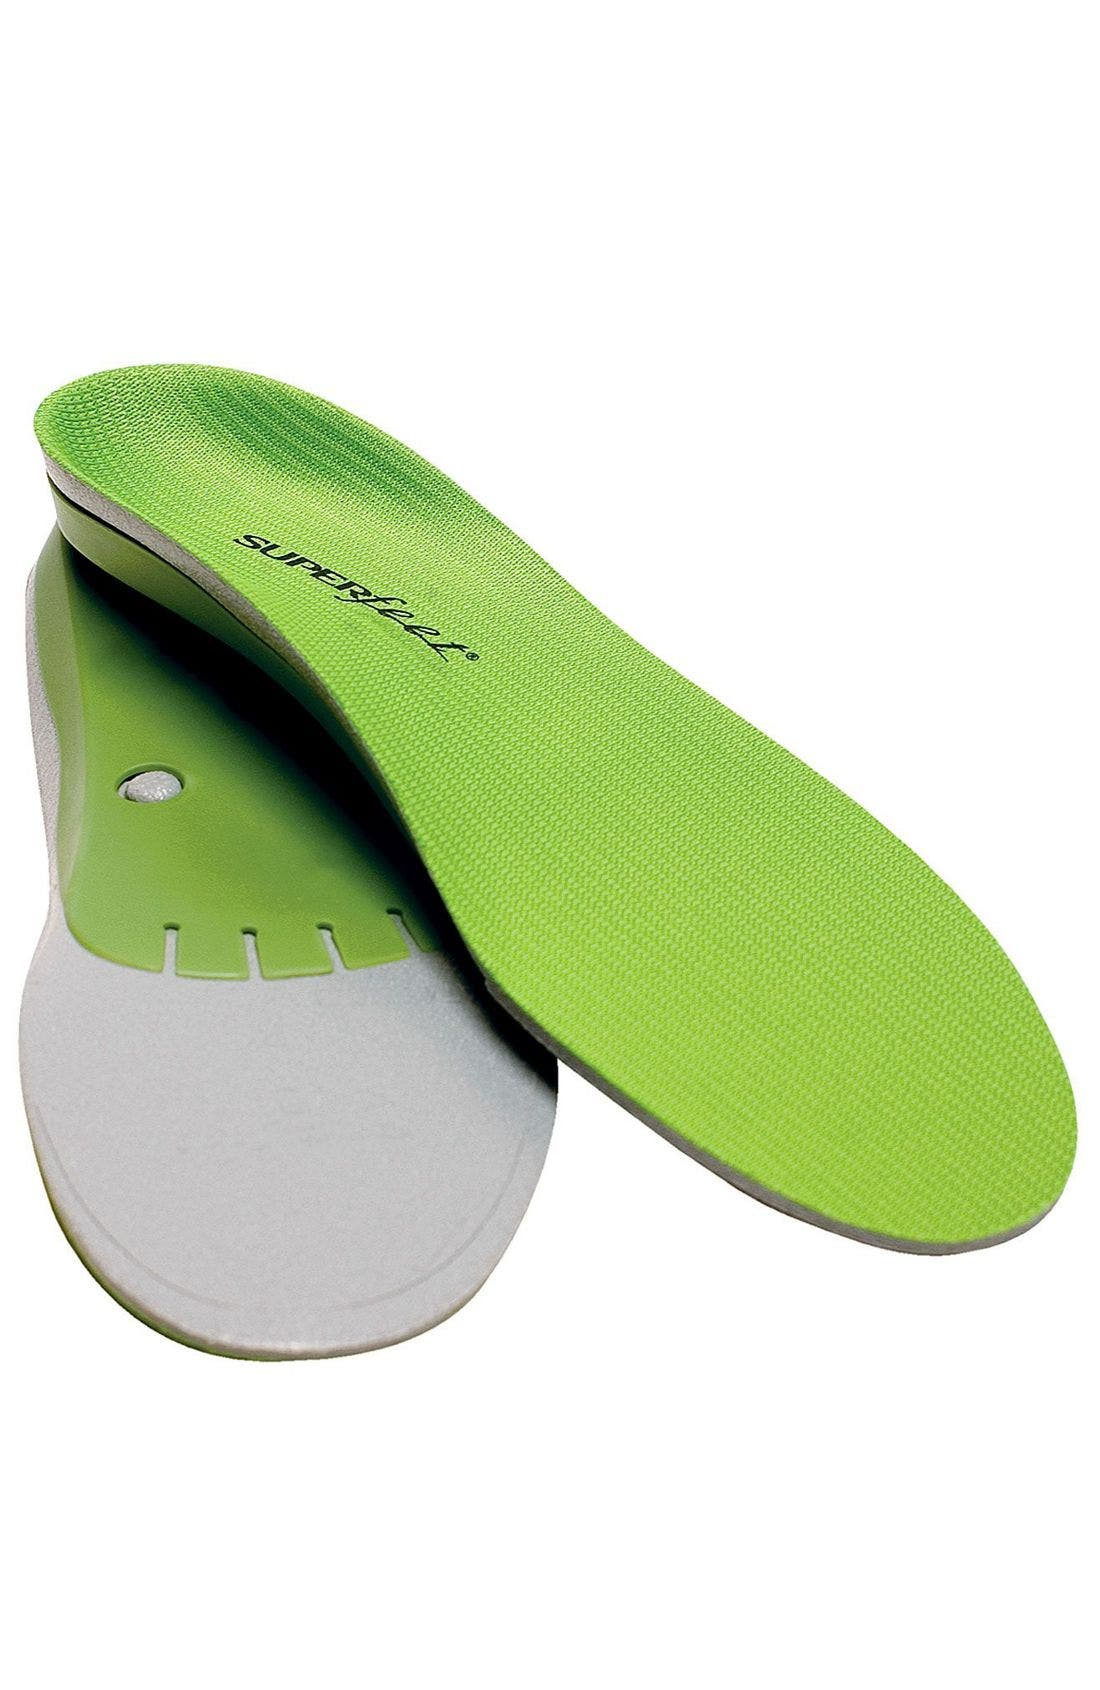 Main Image - Superfeet Performance Green Full Length Insoles (Men)